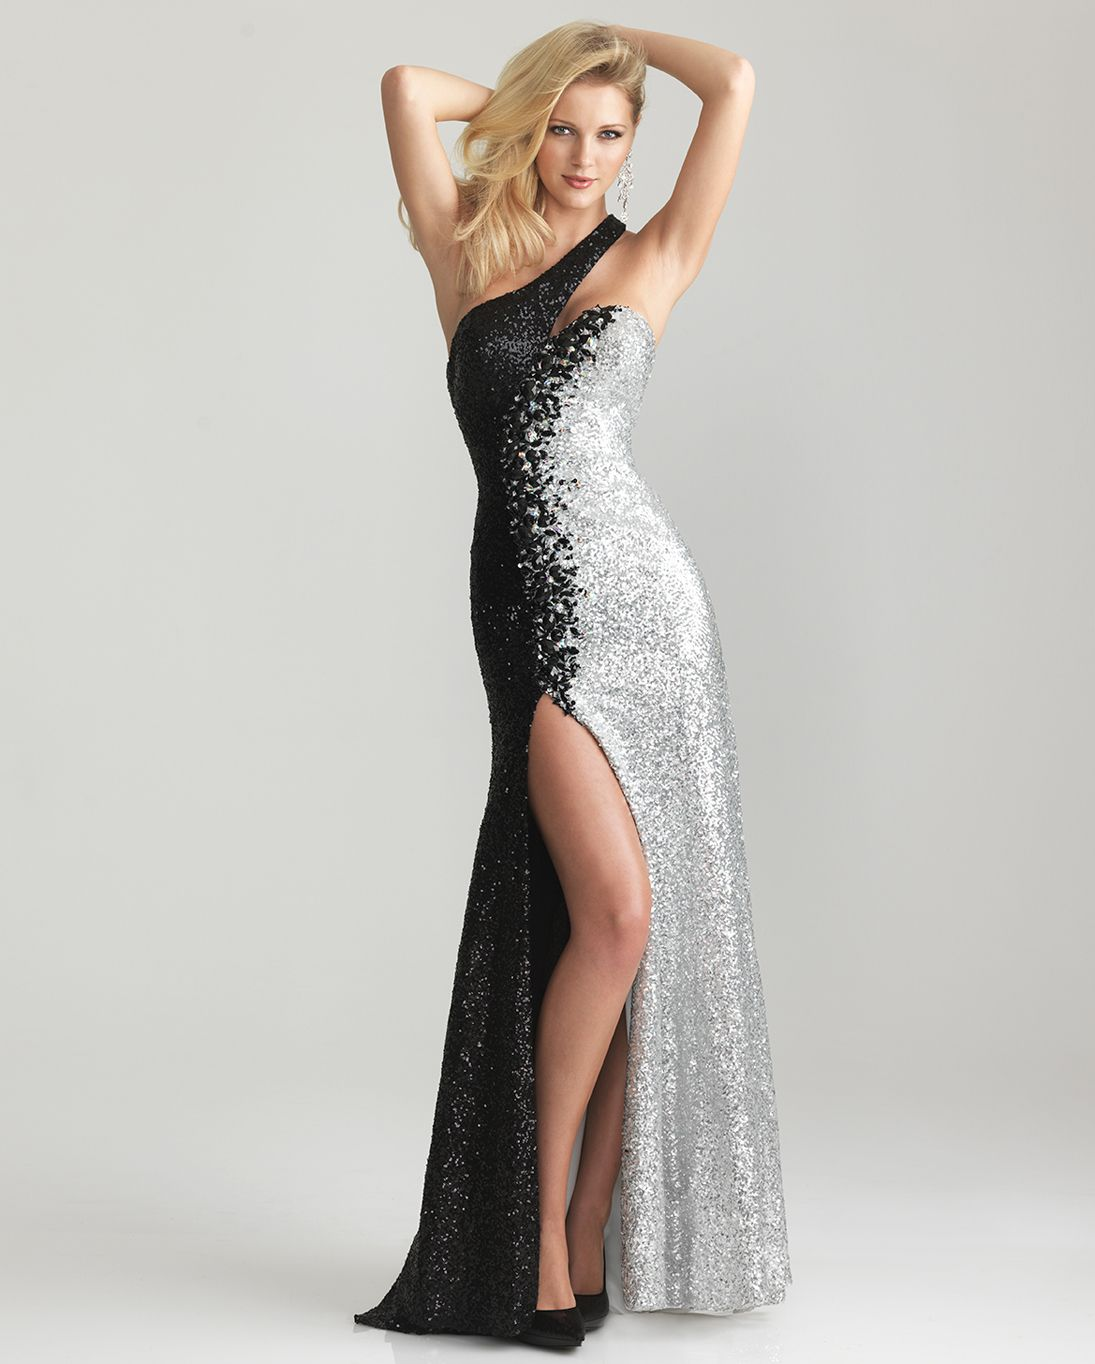 Fashion week Silver and Black sweetheart prom dresses pictures for lady